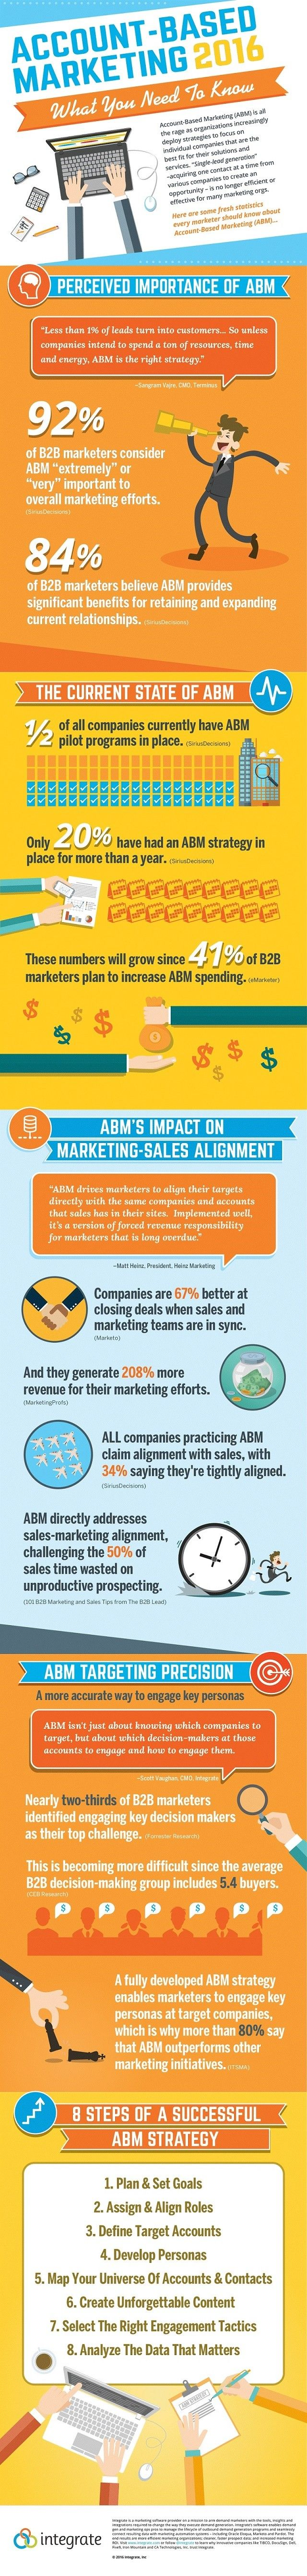 Sales - What You Need to Know About Account-Based Marketing [Infographic] : MarketingProfs Article